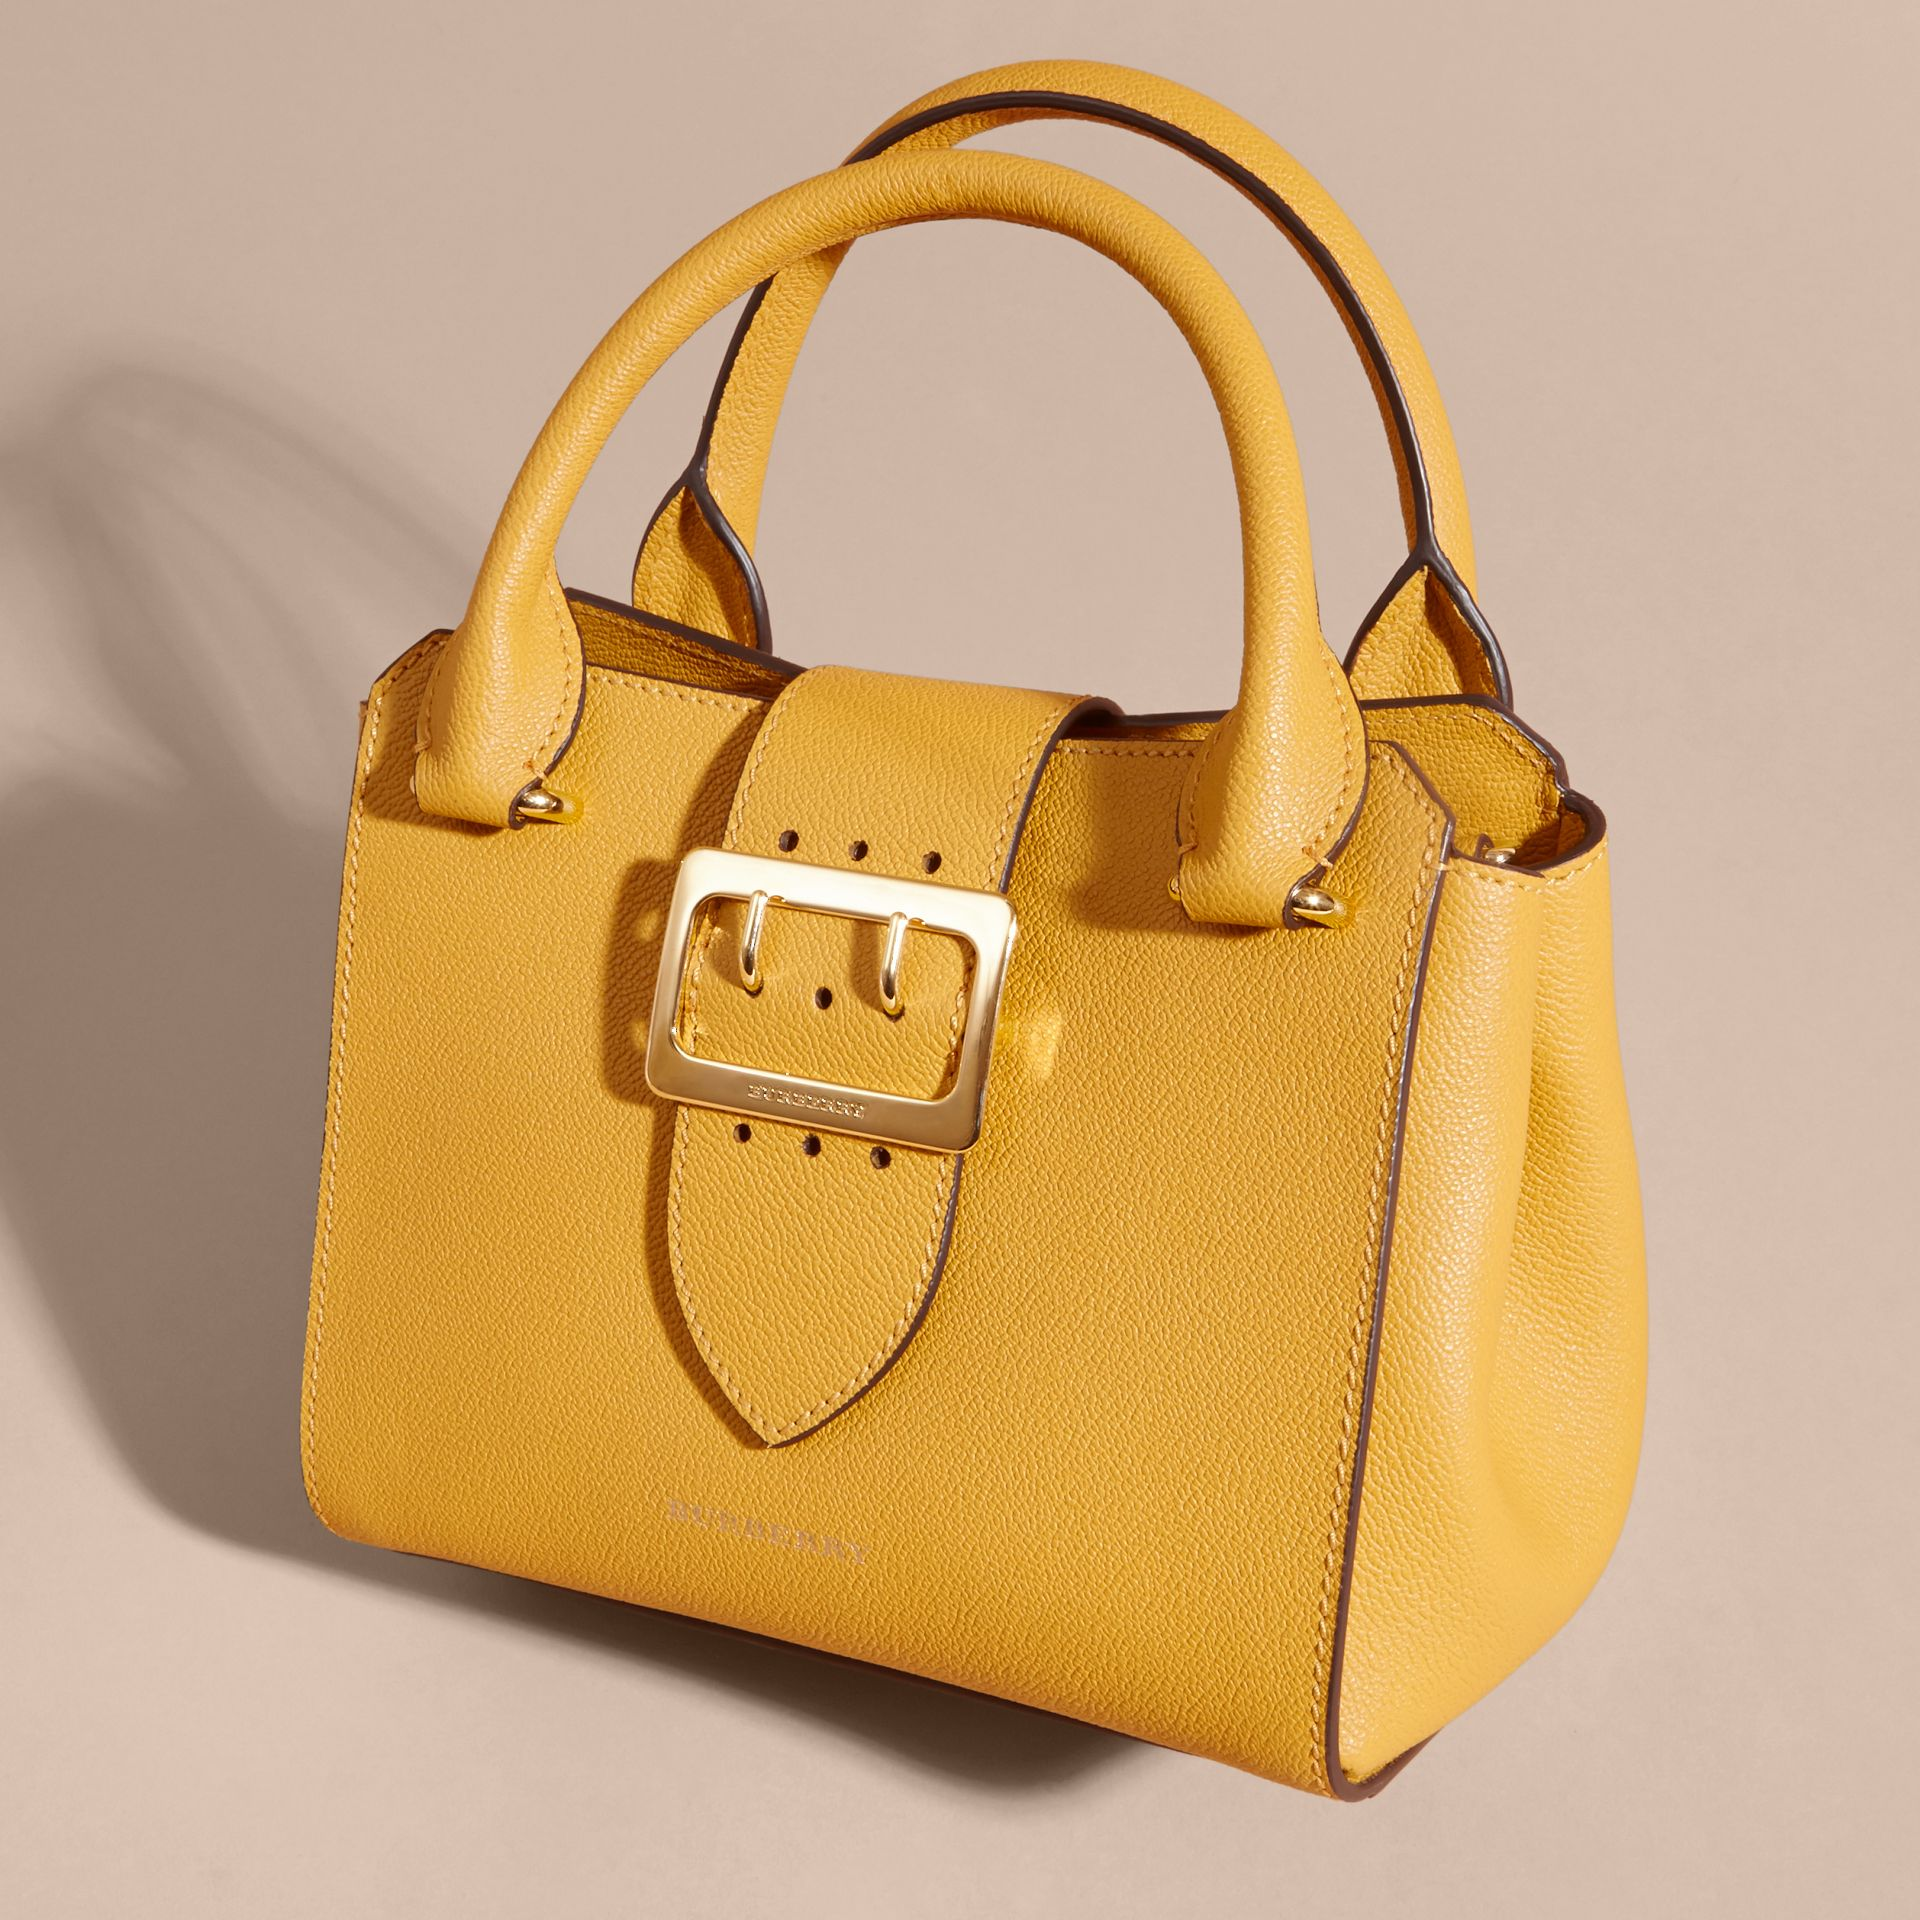 The Small Buckle Tote in Grainy Leather in Bright Straw - Women | Burberry Singapore - gallery image 7